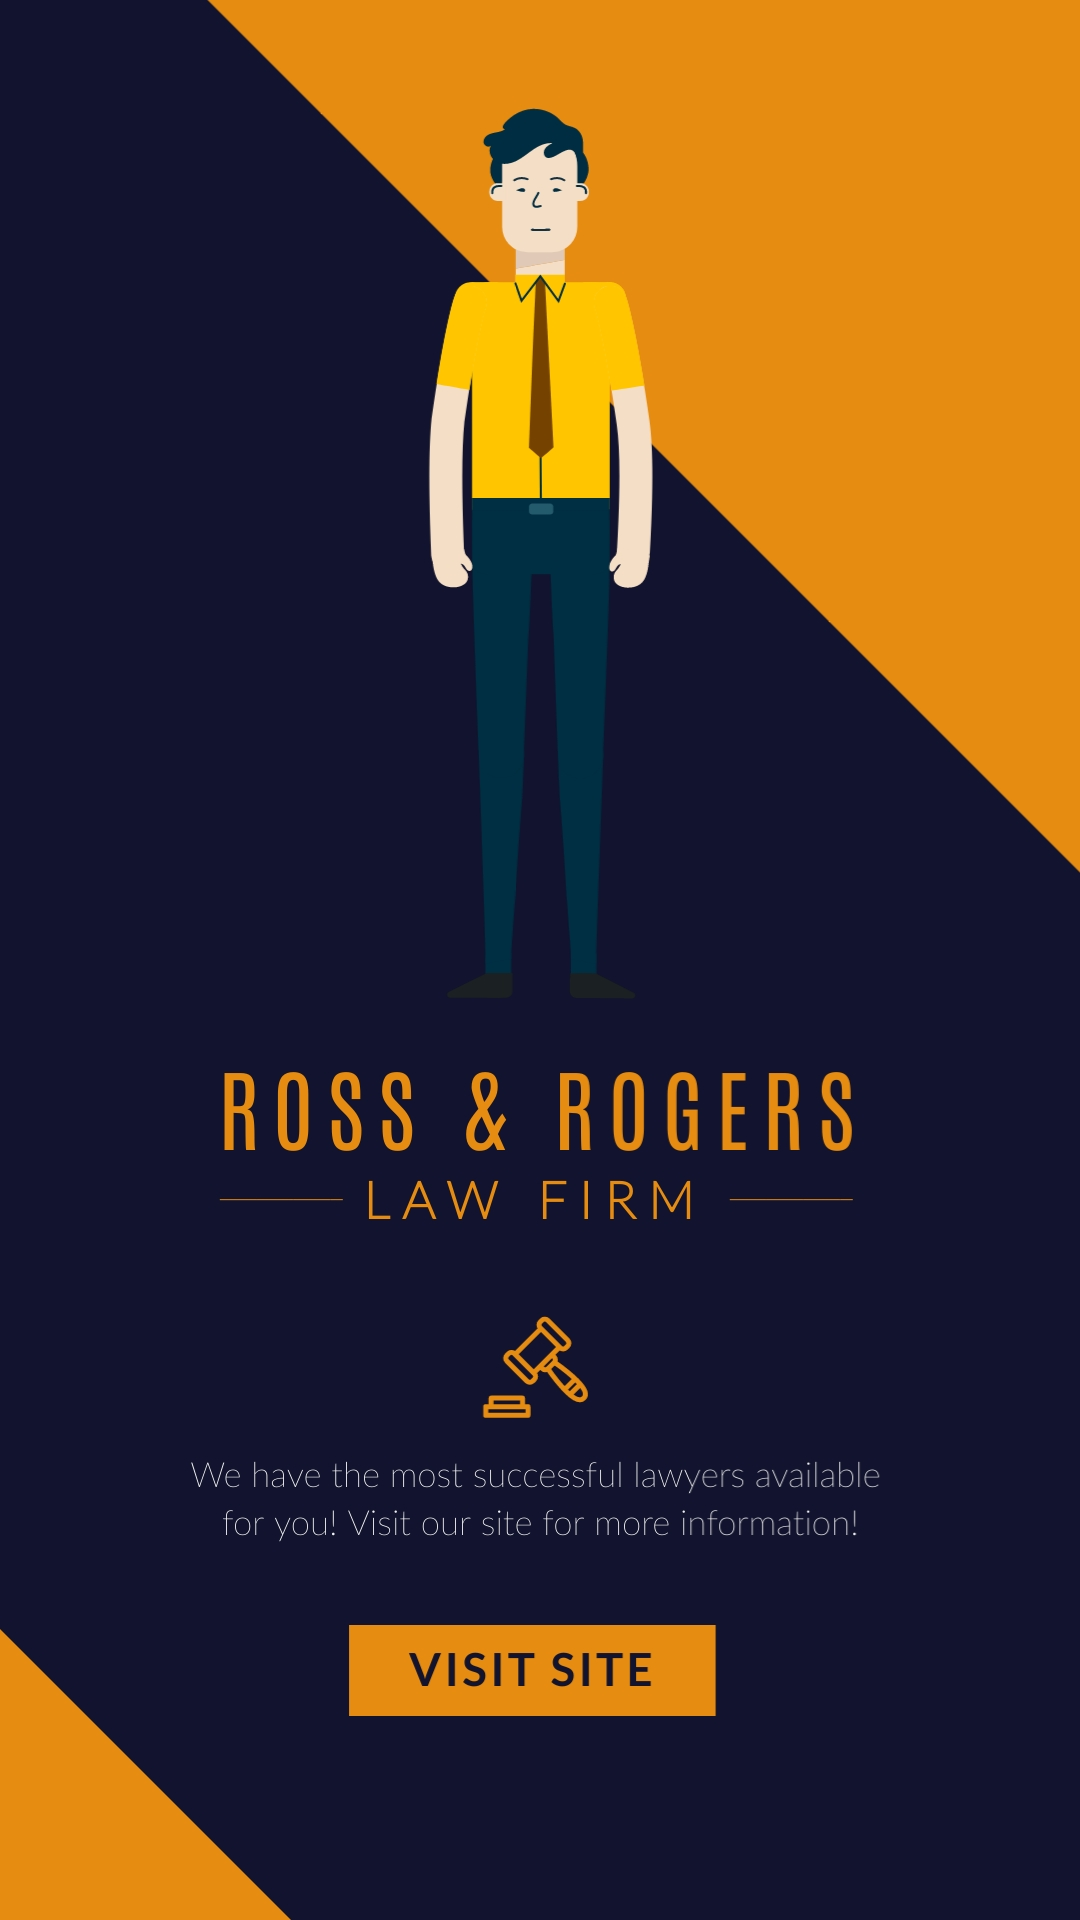 Ross and Rogers Law Firm Vertical Template